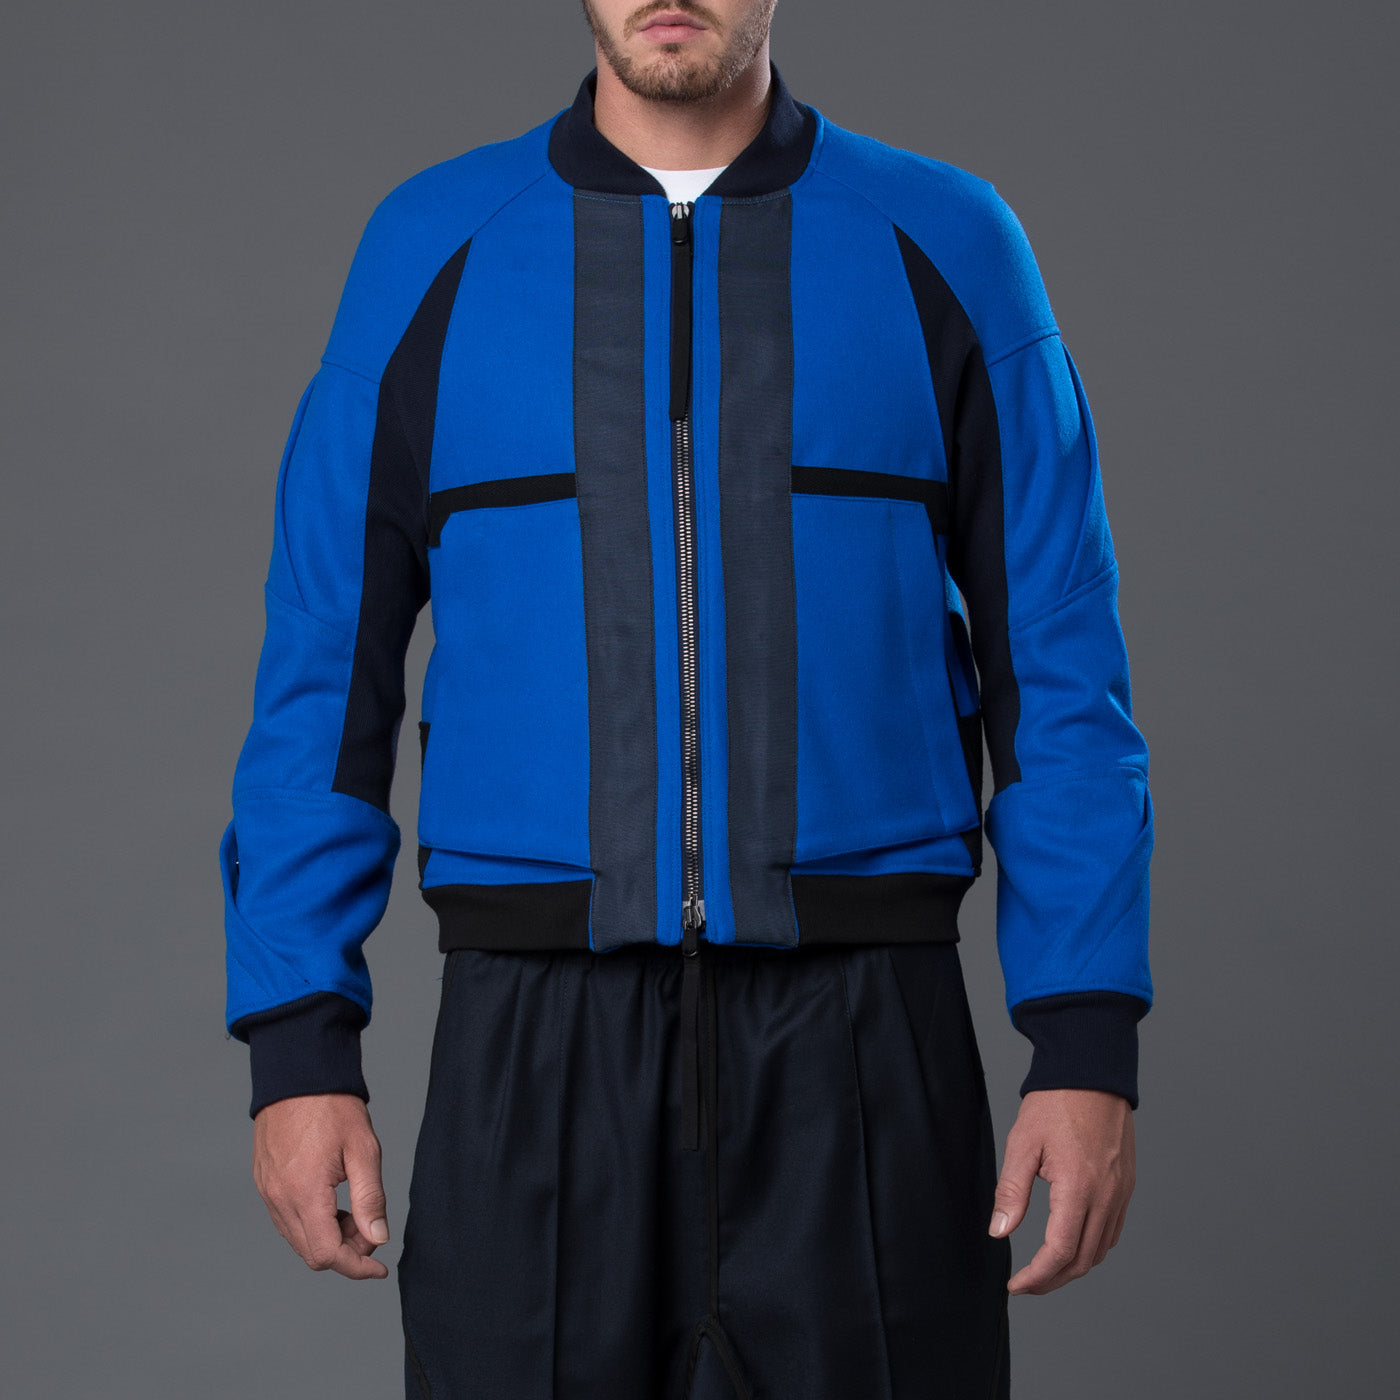 Abasi Rosborough Arc Flight Jacket in Azure Blue